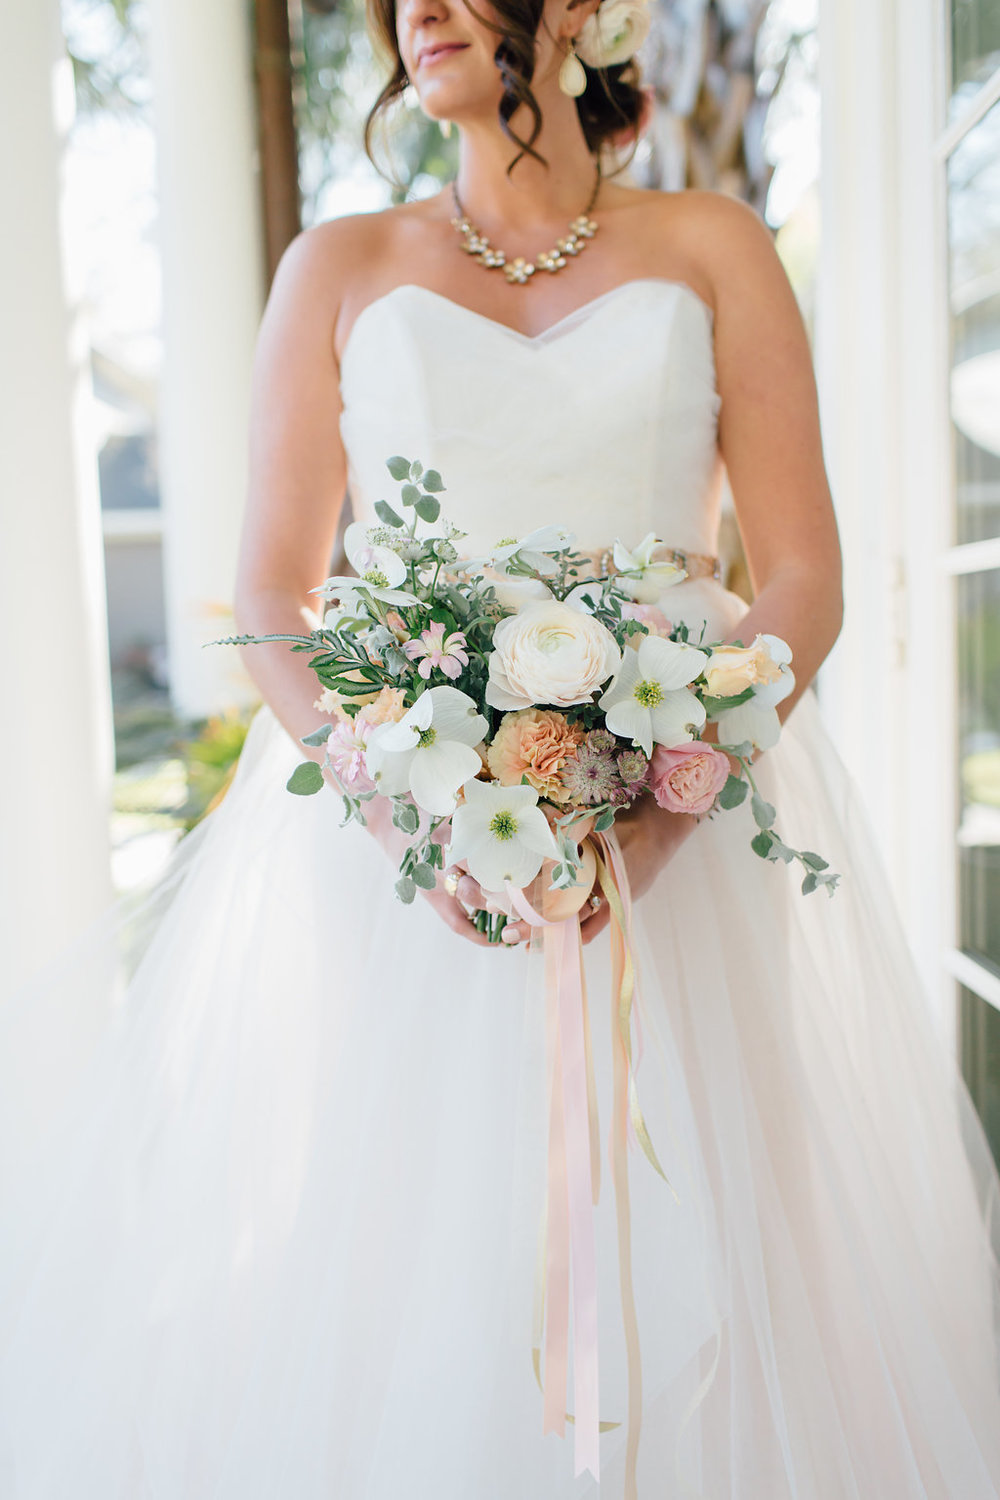 hannah-lane-photography-southern-weddings-blog-charleson-wedding-charleston-styled-shoot-ivory-and-beau-bridal-boutique-blush-by-hayley-paige-candi-blush-tulle-wedding-dress-savannah-bridal-boutique-savannah-wedding-dresses-rosegold-sash-29.jpg